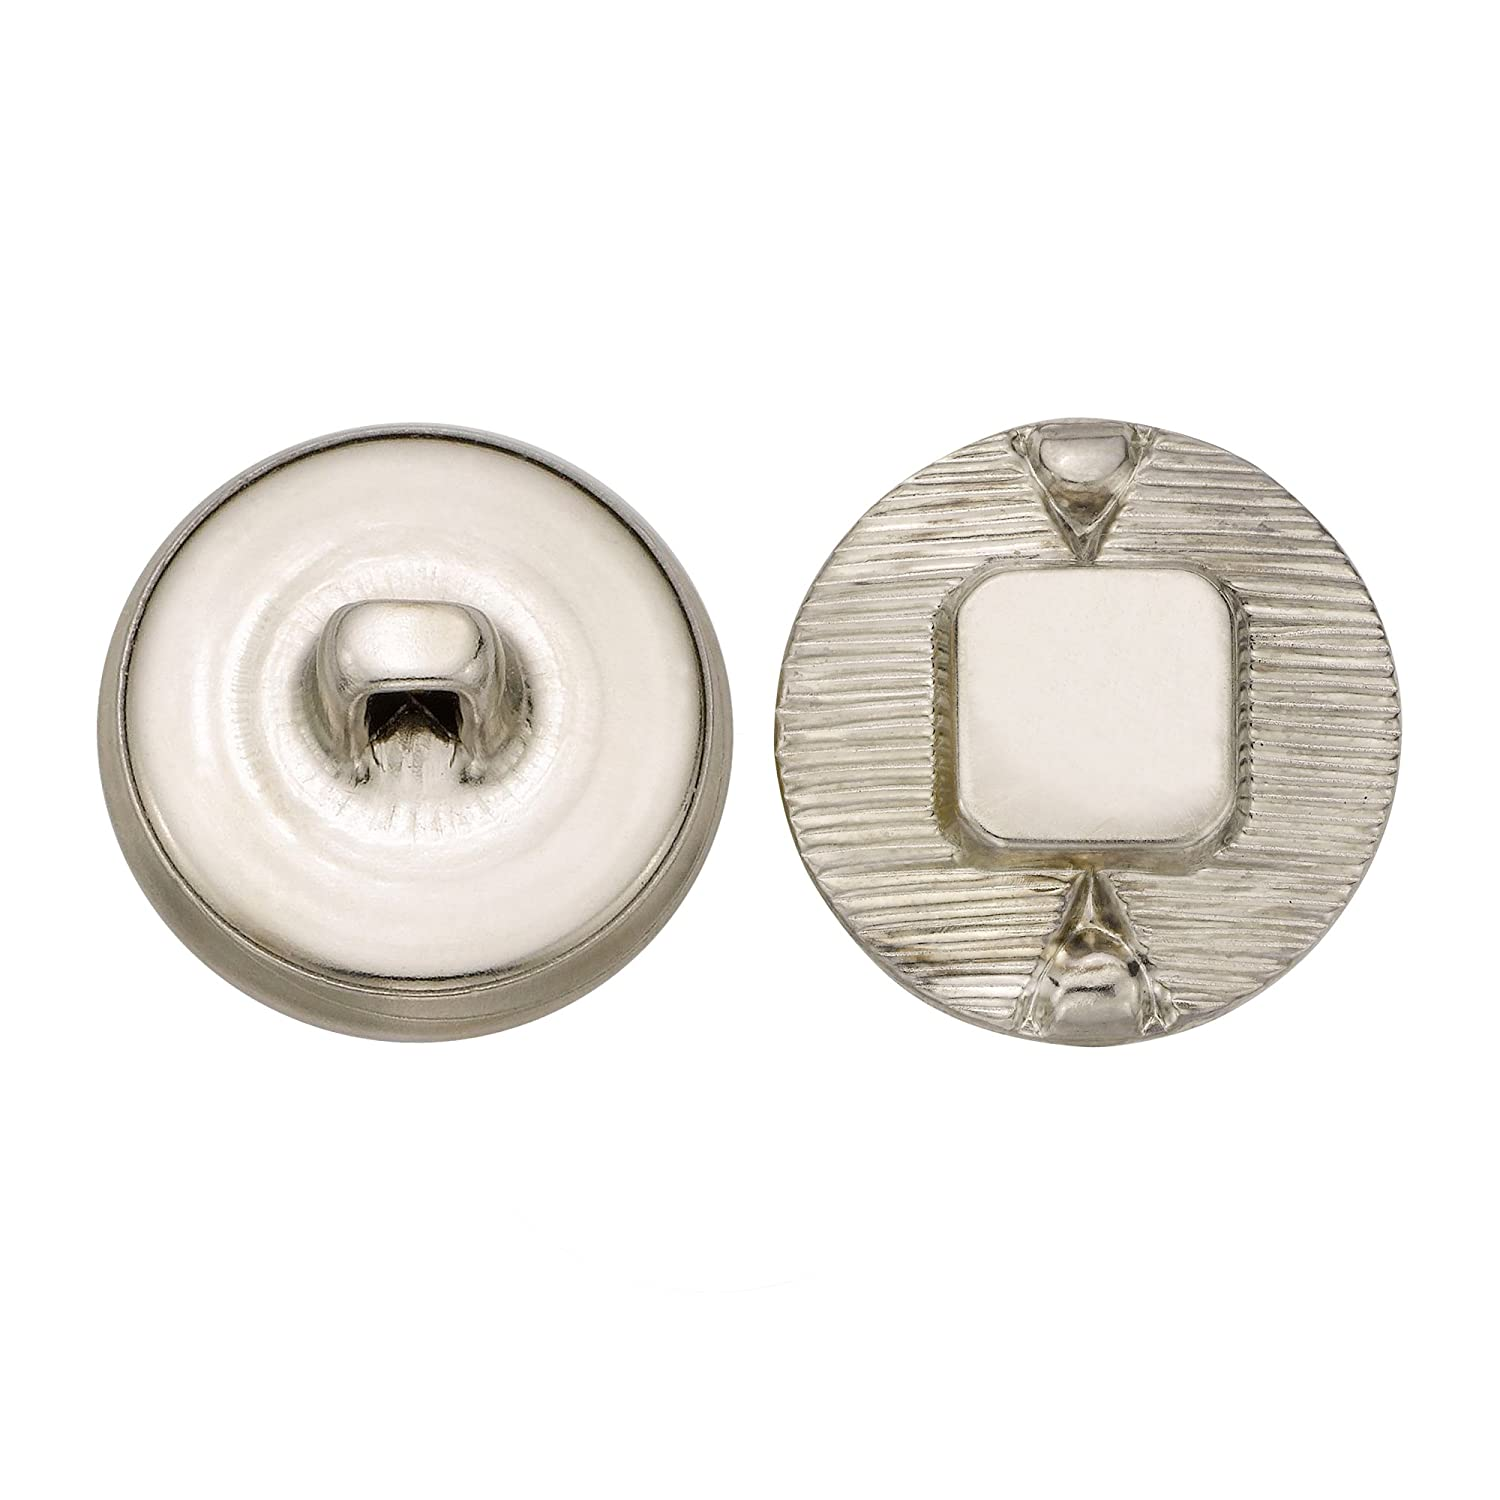 Nickel Size 30 Ligne 36-Pack C/&C Metal Products Corp C/&C Metal Products 5111 Modern Metal Button